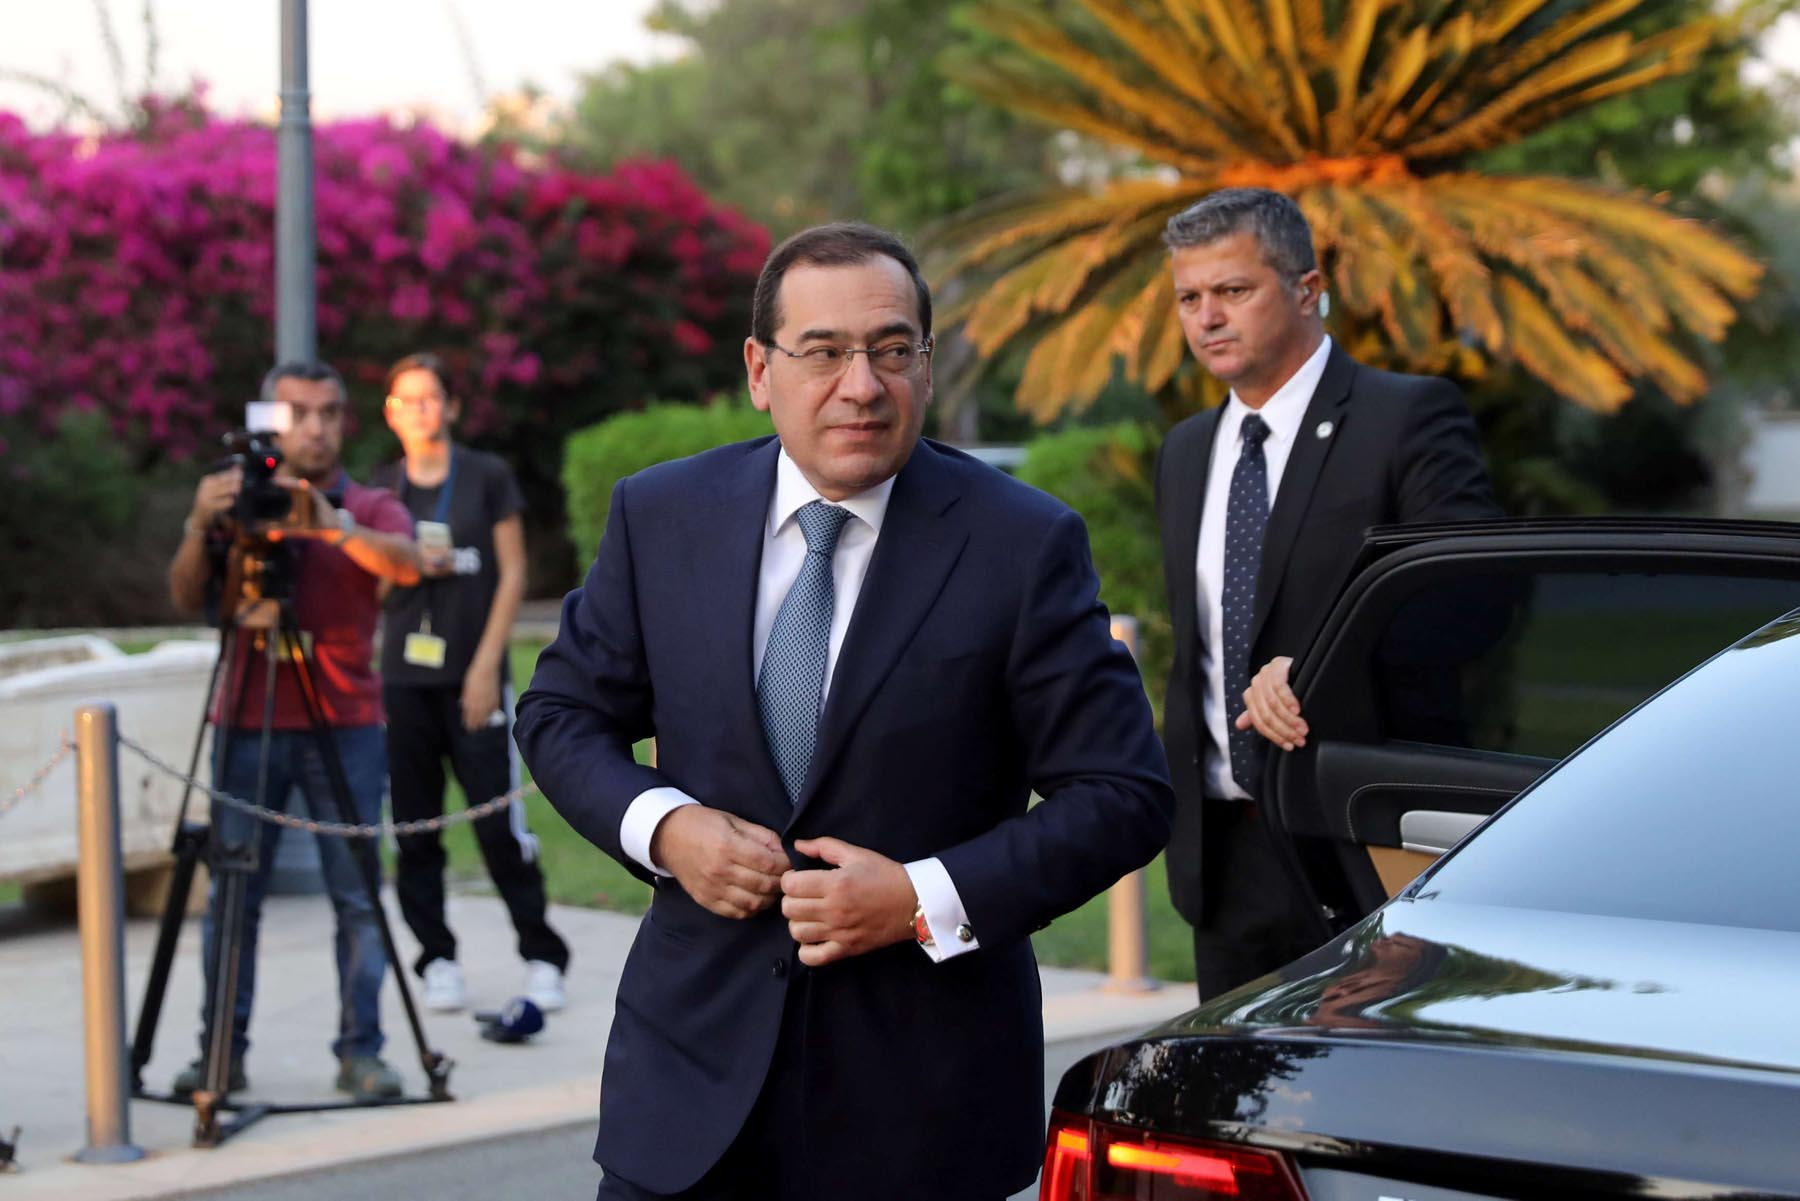 Egypt's Minister of Petroleum and Mineral Resources Tarek el-Molla arrives for a meeting  in Nicosia, last September. (Reuters)